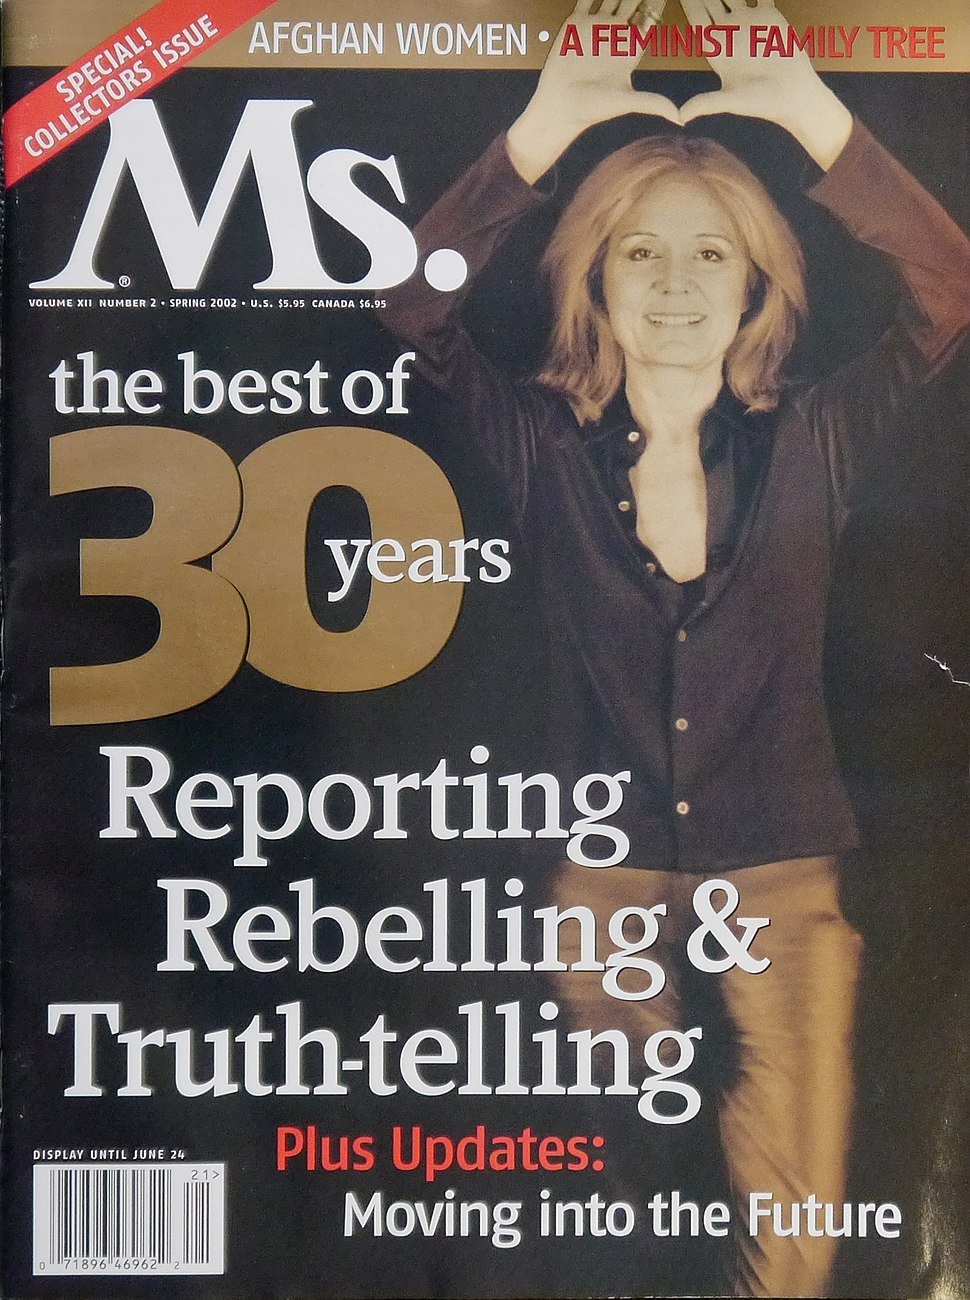 Ms. magazine Cover - Spring 2002